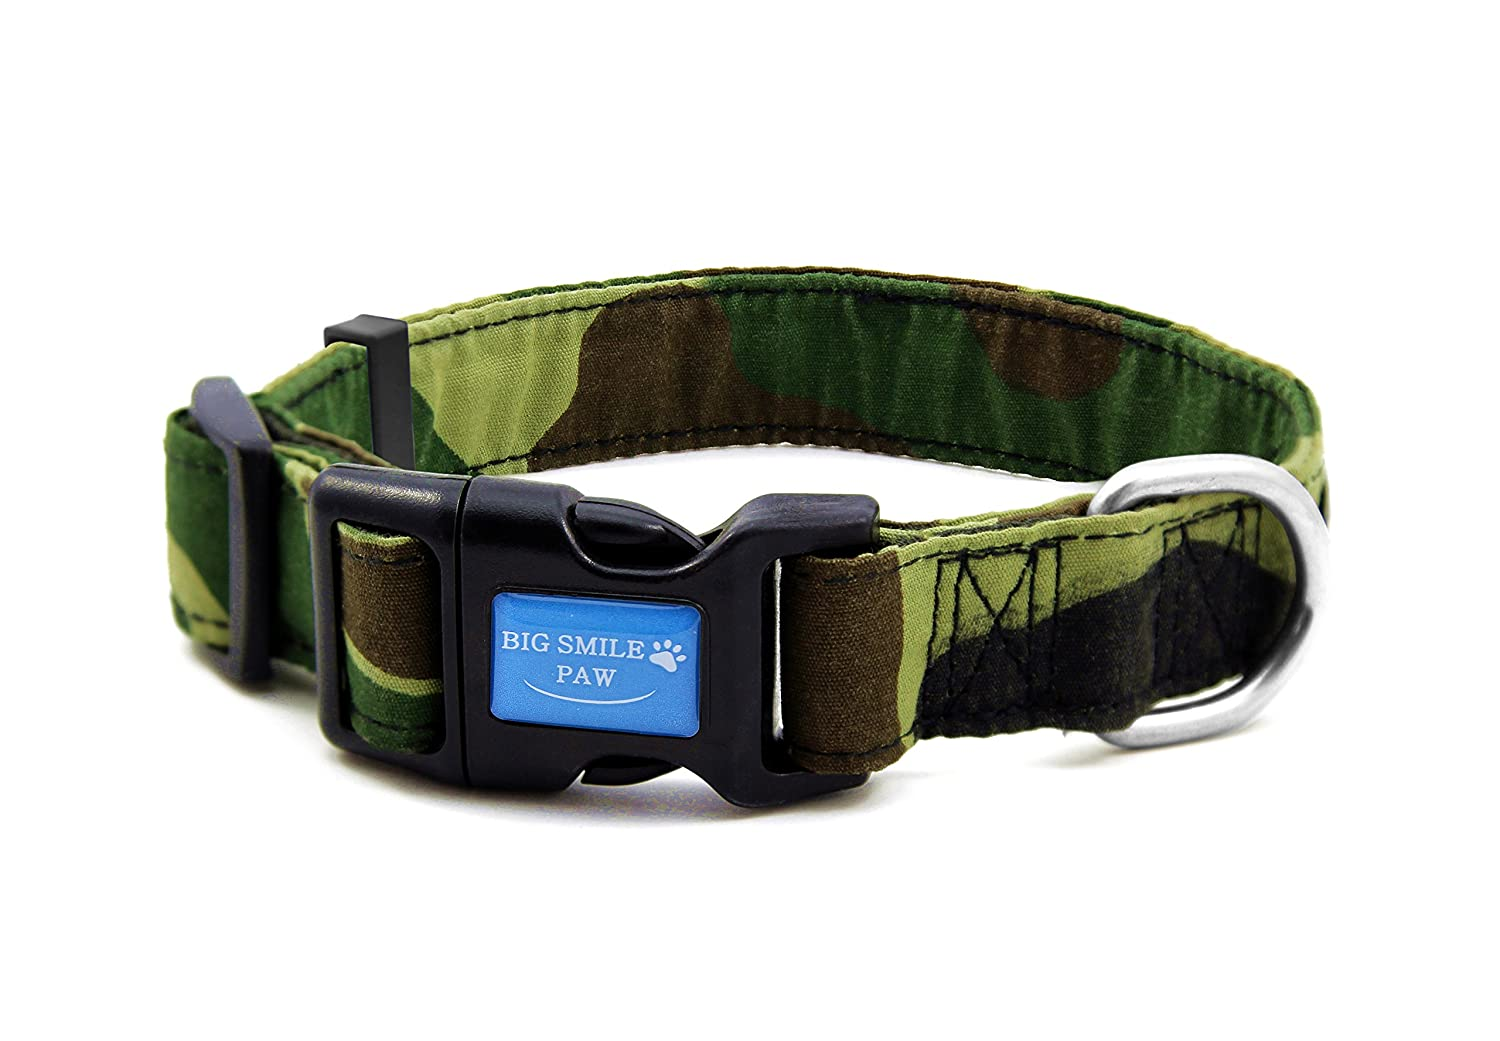 L BIG SMILE PAW Camo Dog Collar for Medium and Large Dogs (L)